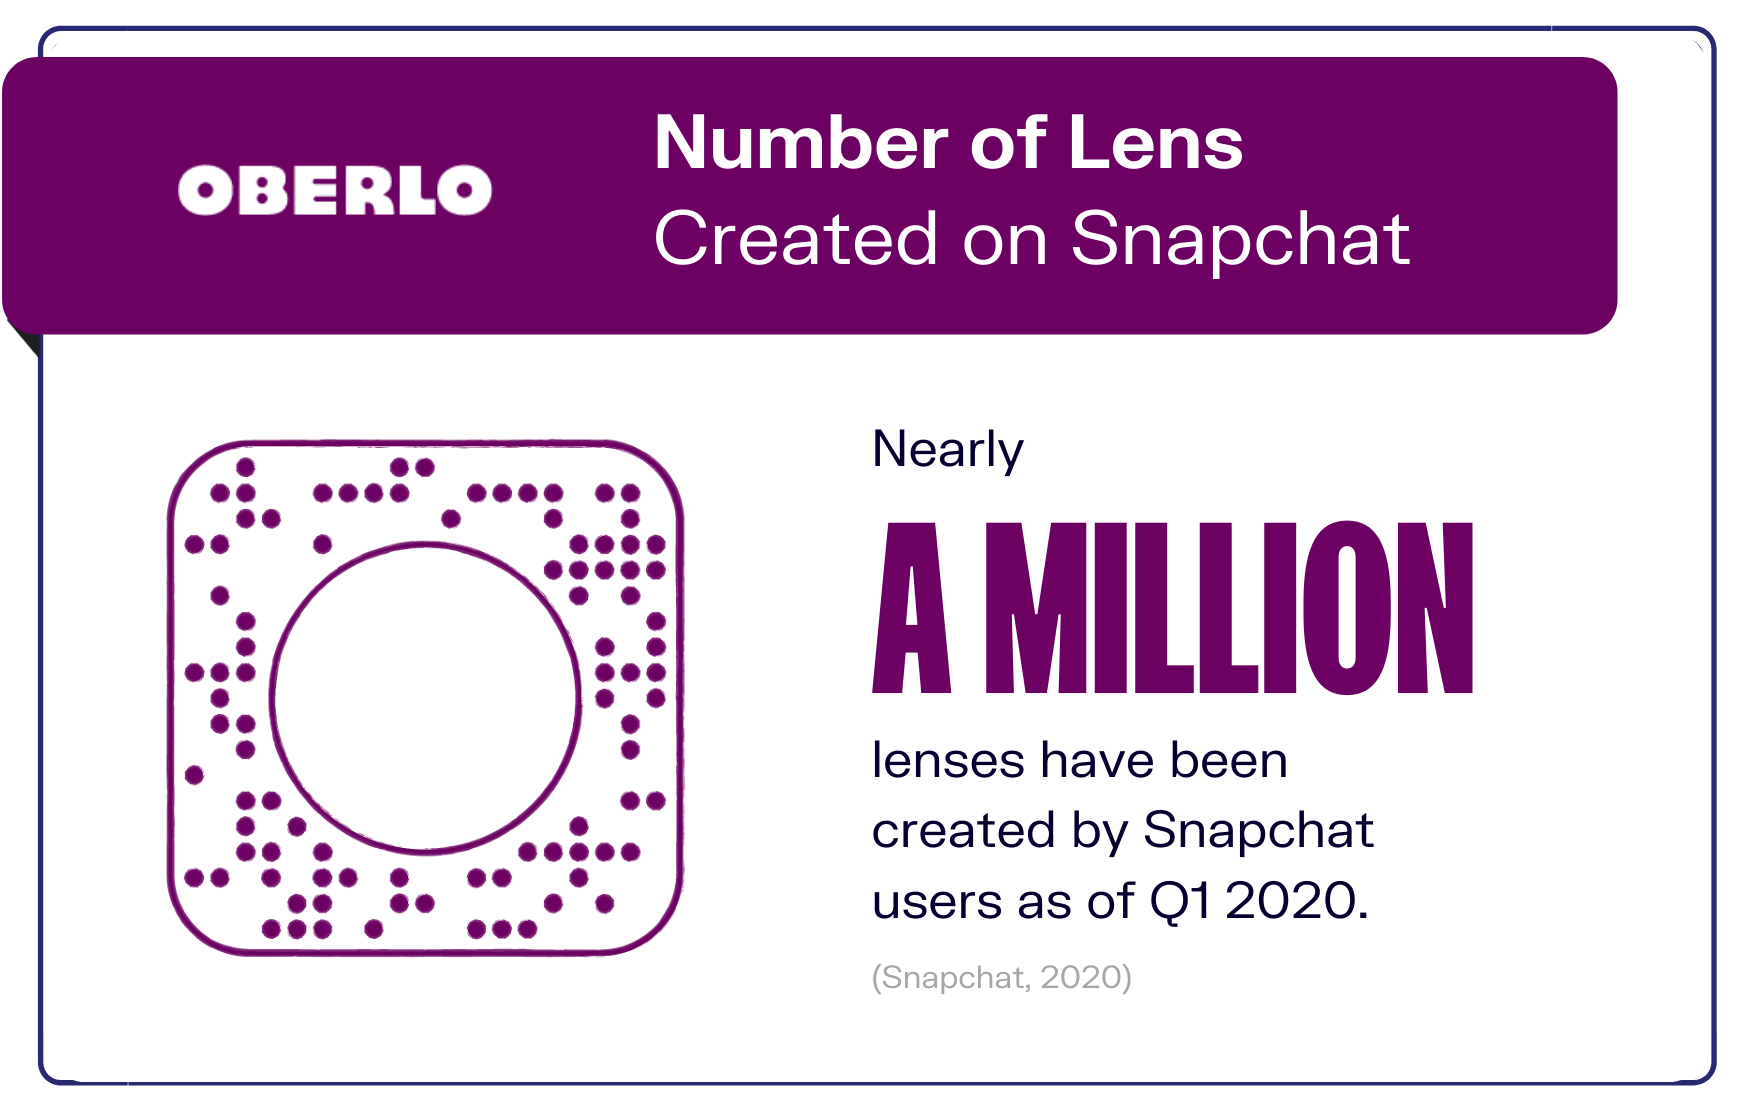 Number of Lenses Created on Snapchat graphic